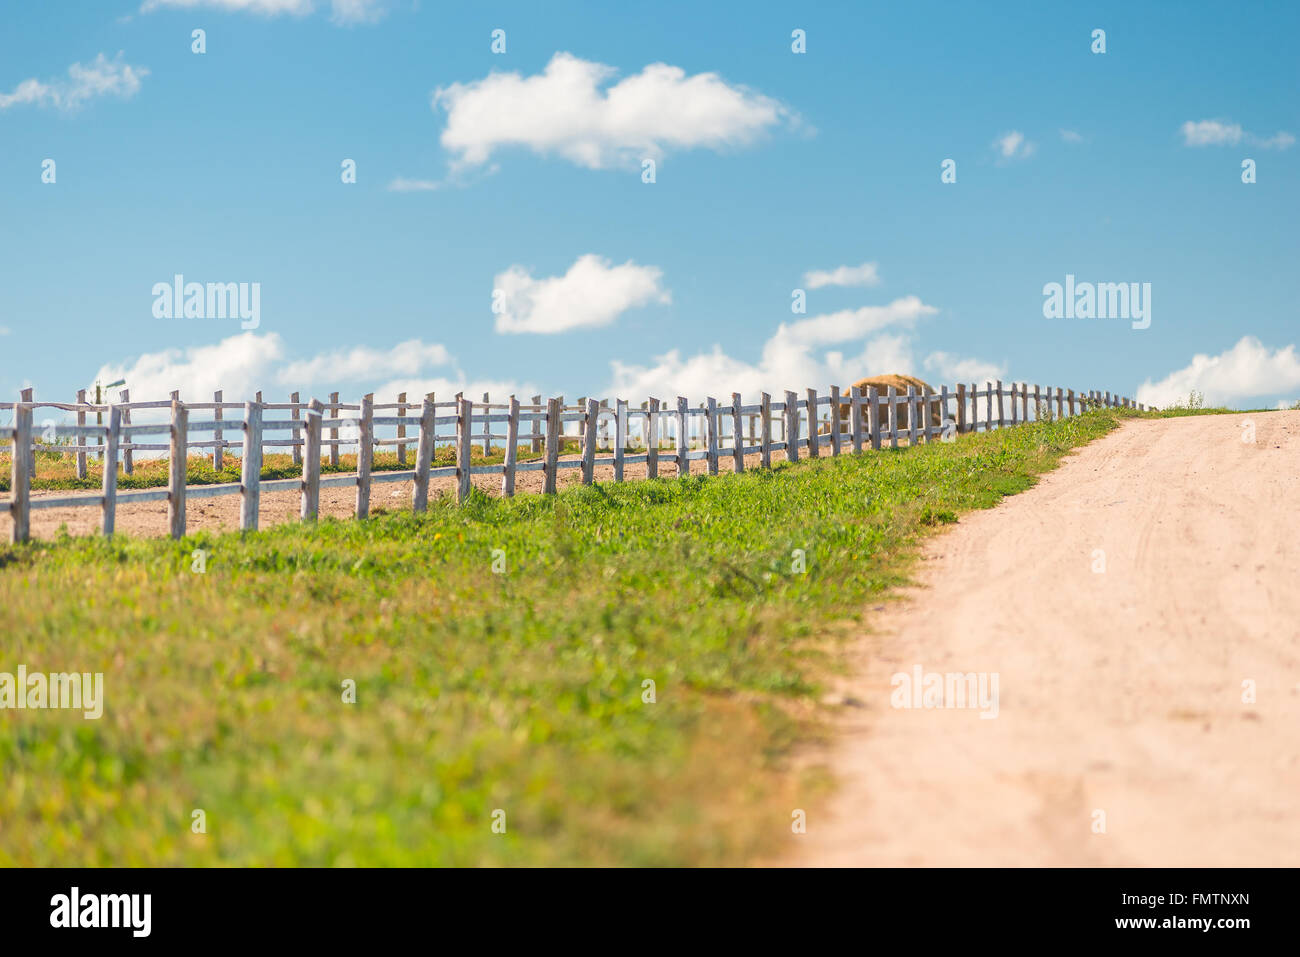 Wooden fence on a ranch in a beautiful location stock photo royalty free image 98889021 alamy - Rustic wood fences a pastoral atmosphere ...